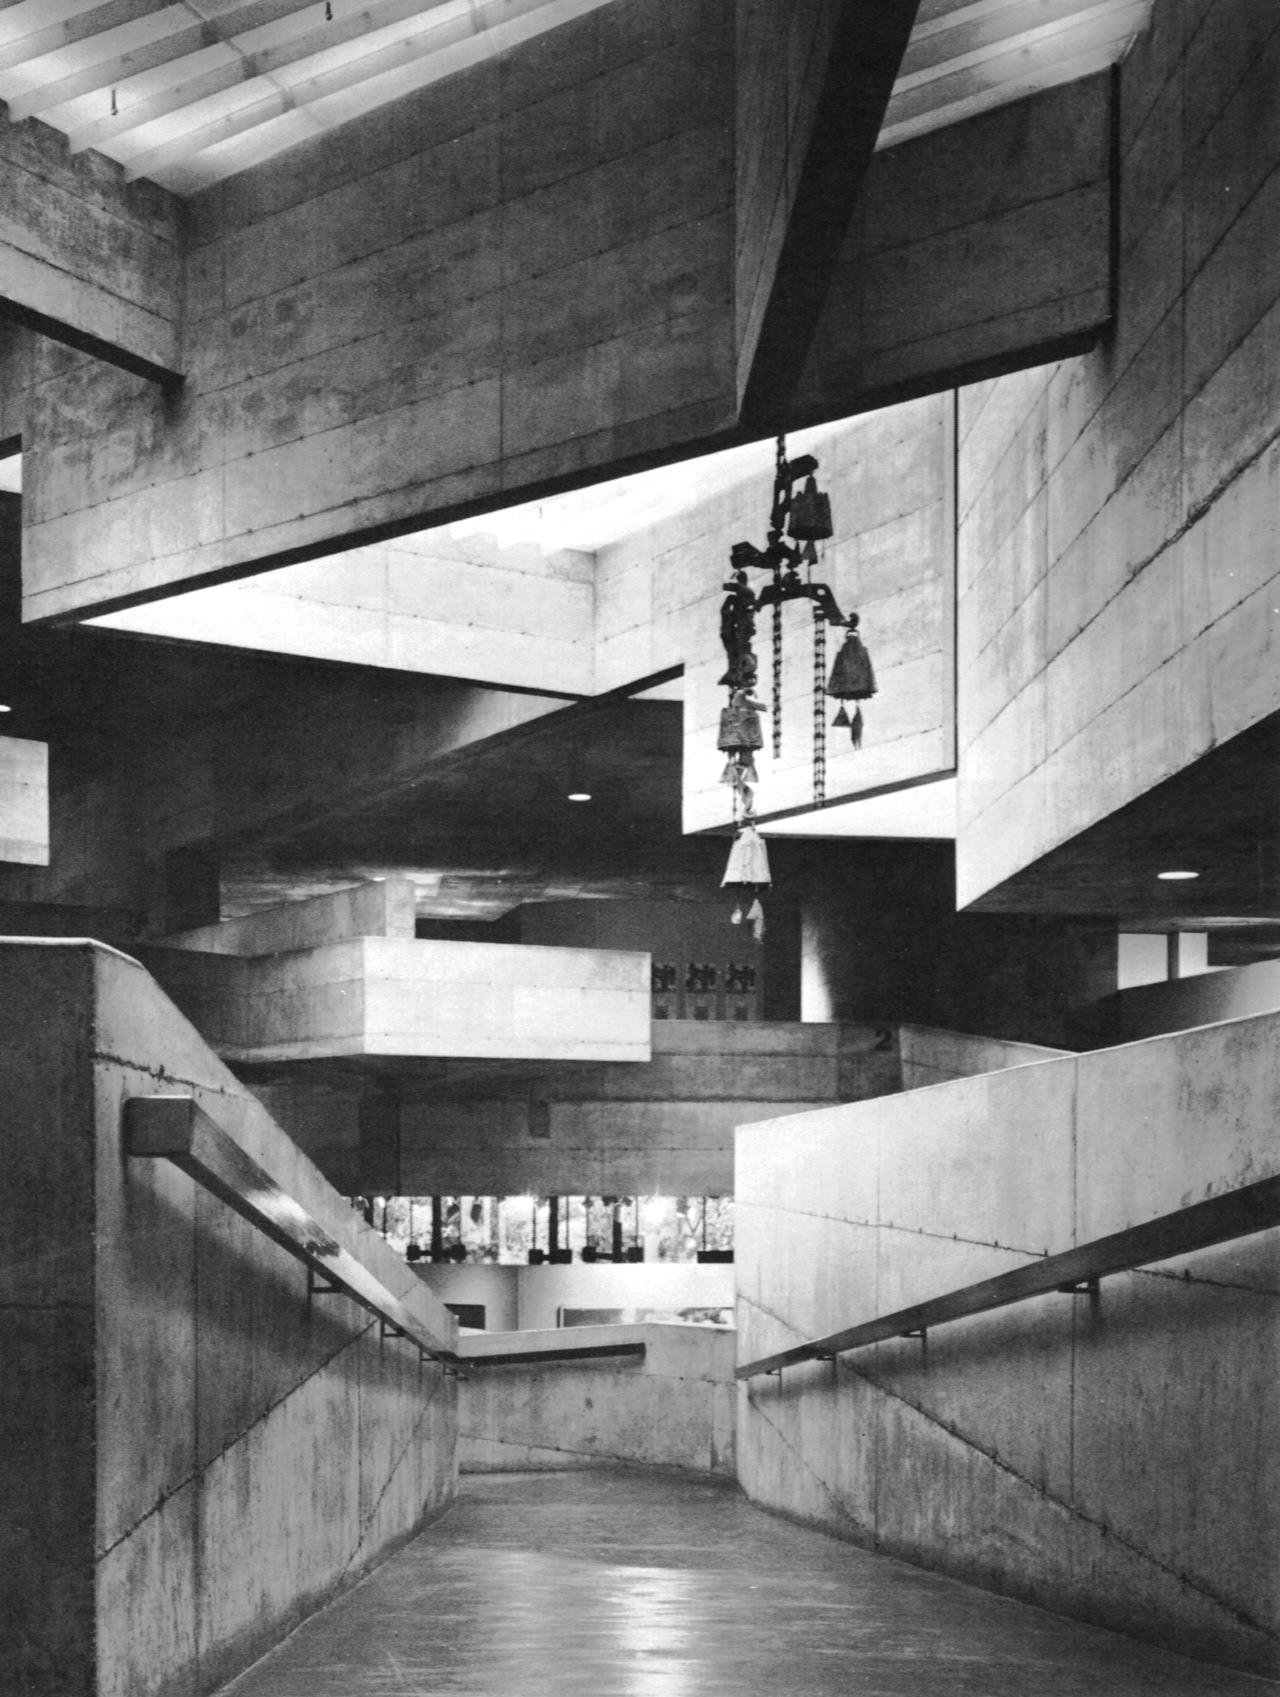 University Arts Center, University of California, Berkeley, 1965-70 (Mario J. Ciampi, Paul W. Reiter, Richard L. Jorasch, Ronald E. Wagner)